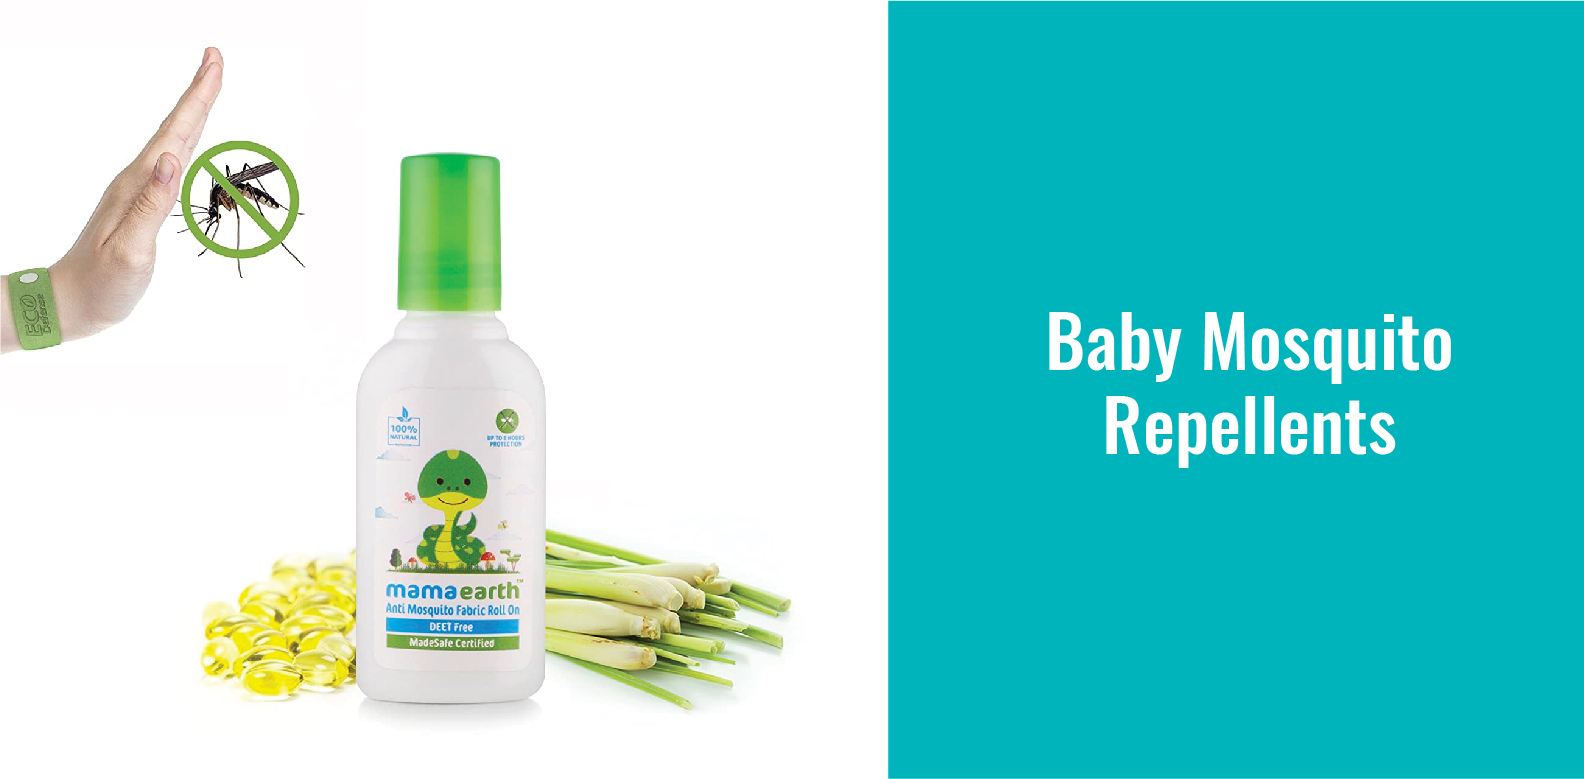 Baby Mosquito Repellents & More